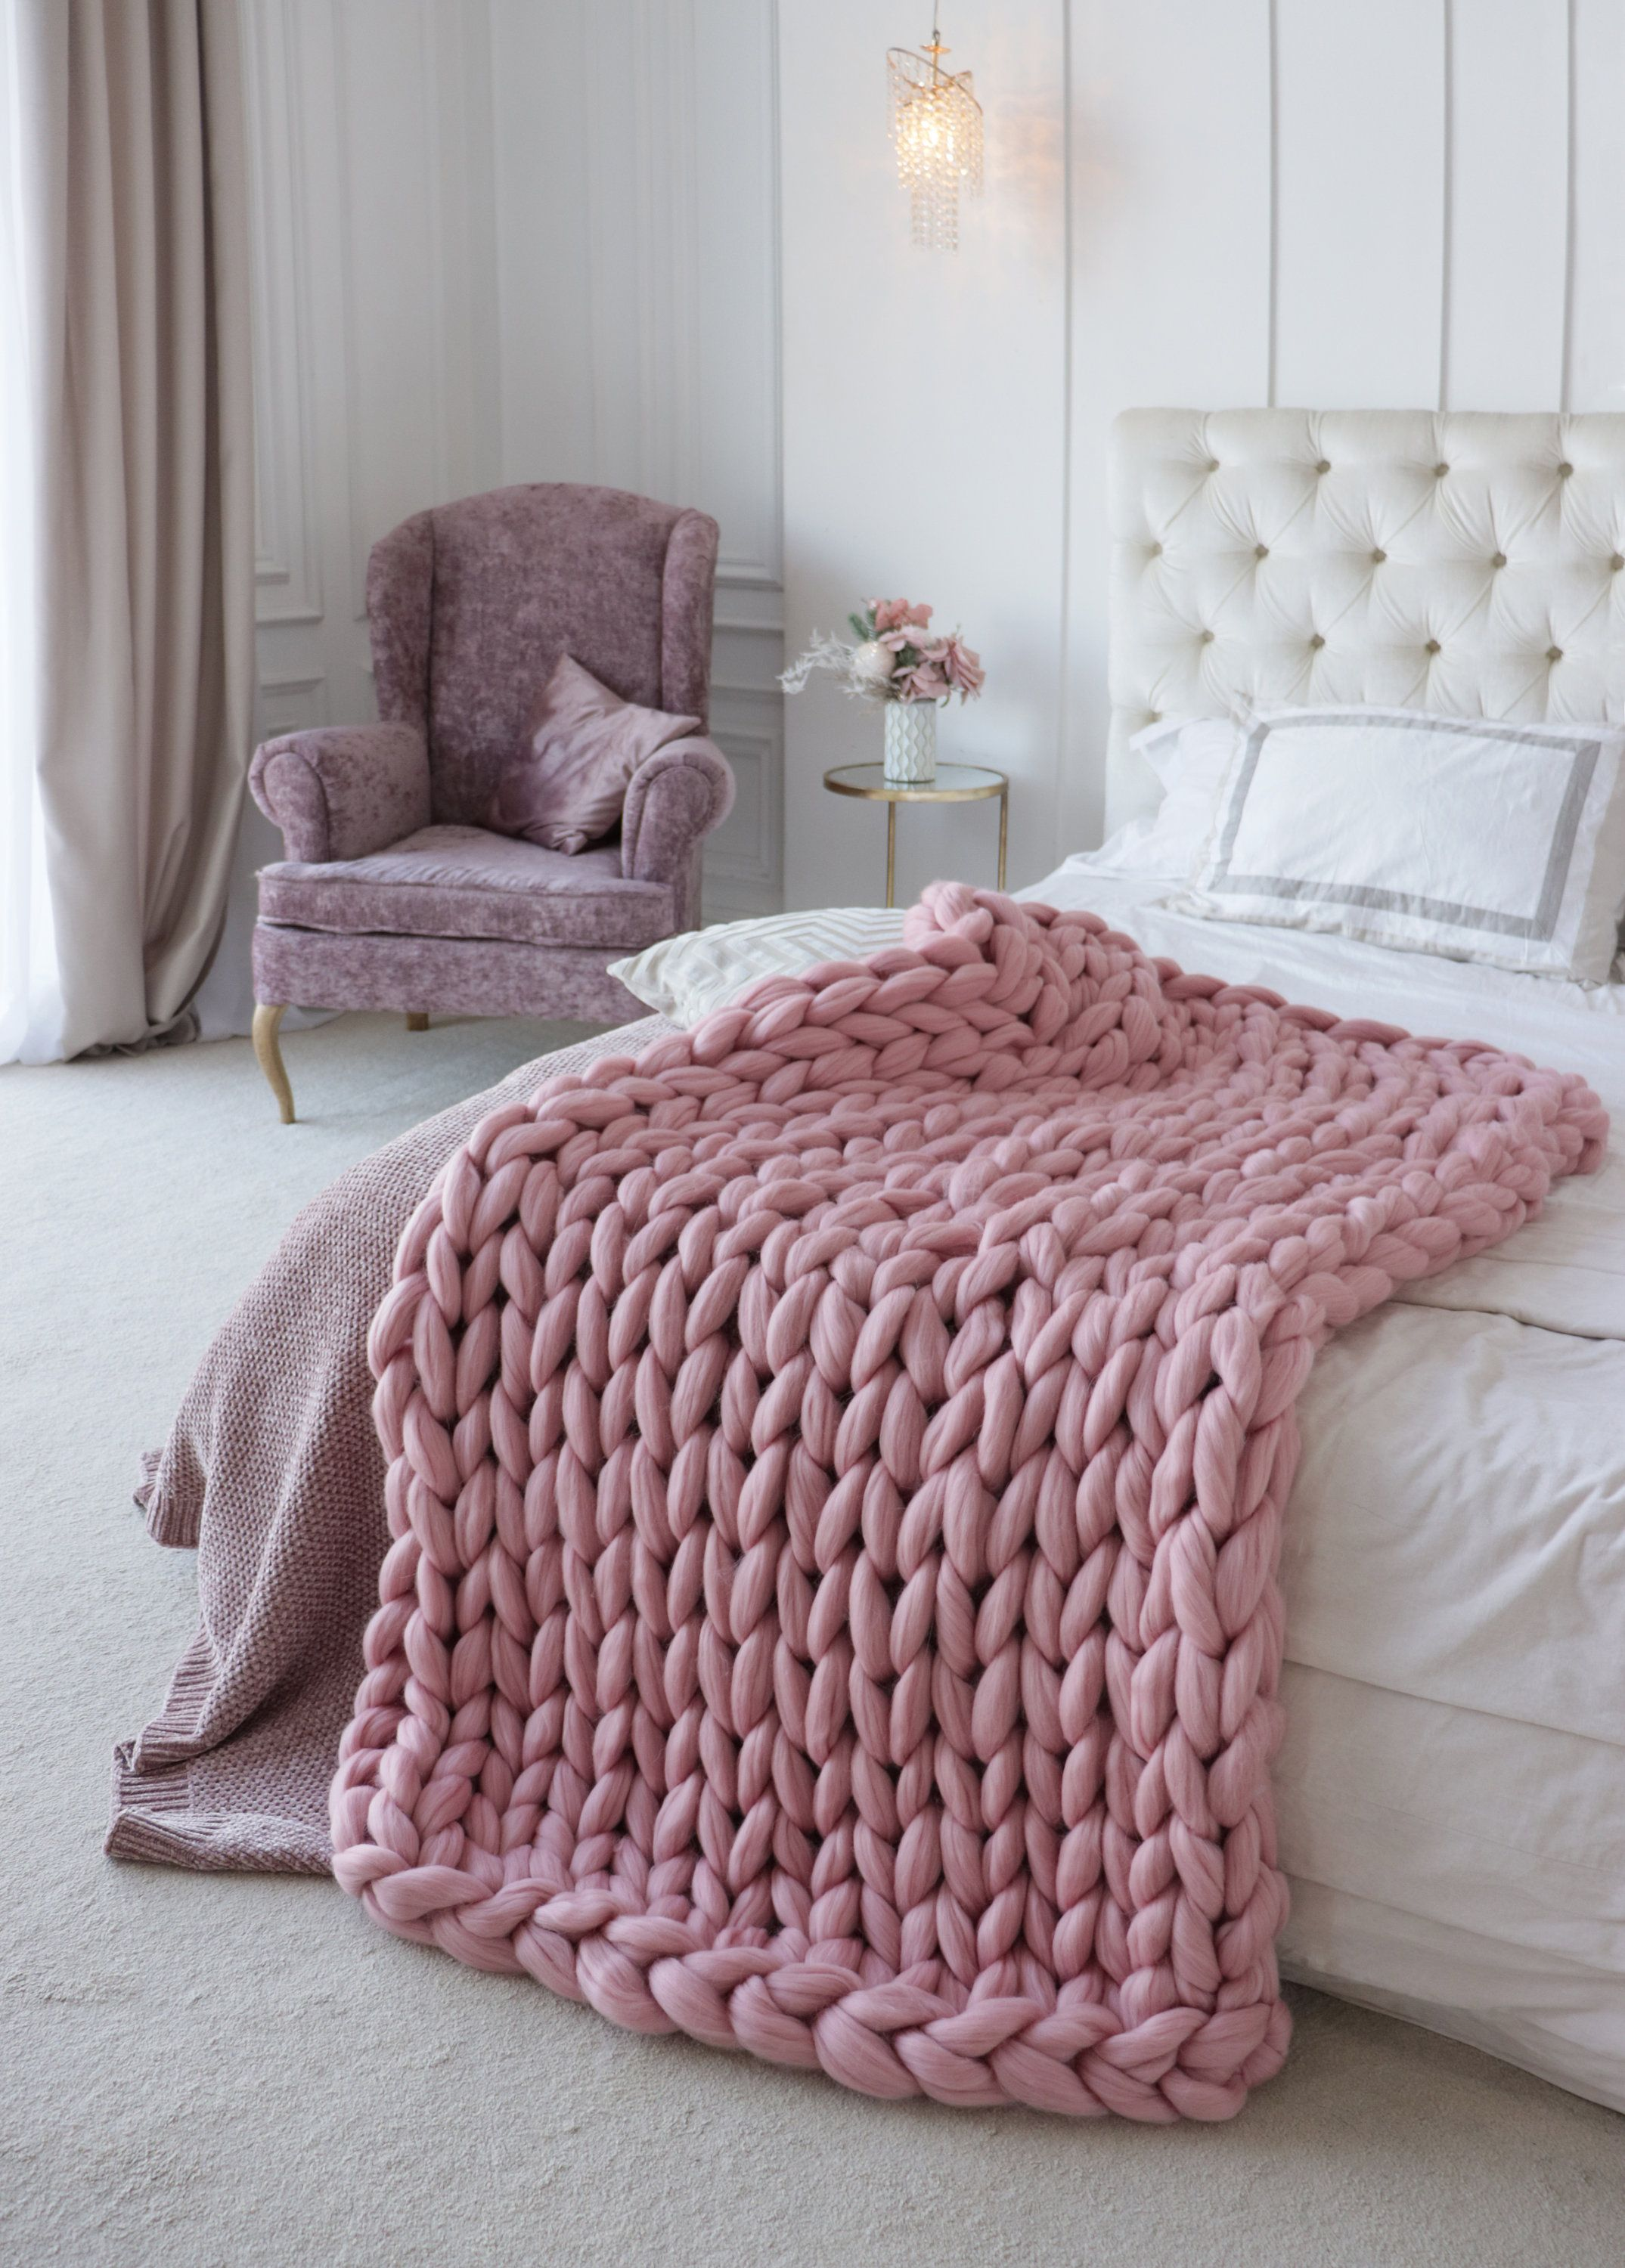 Woven Blanket Big Knit Blanket Large Knit Blanket Knit Blanket Chunky Blanket Chunky Knit Blanket Wool Hugs Mothers Day Gift In 2020 Knitted Blankets Arm Knitting Blanket Large Knit Blanket